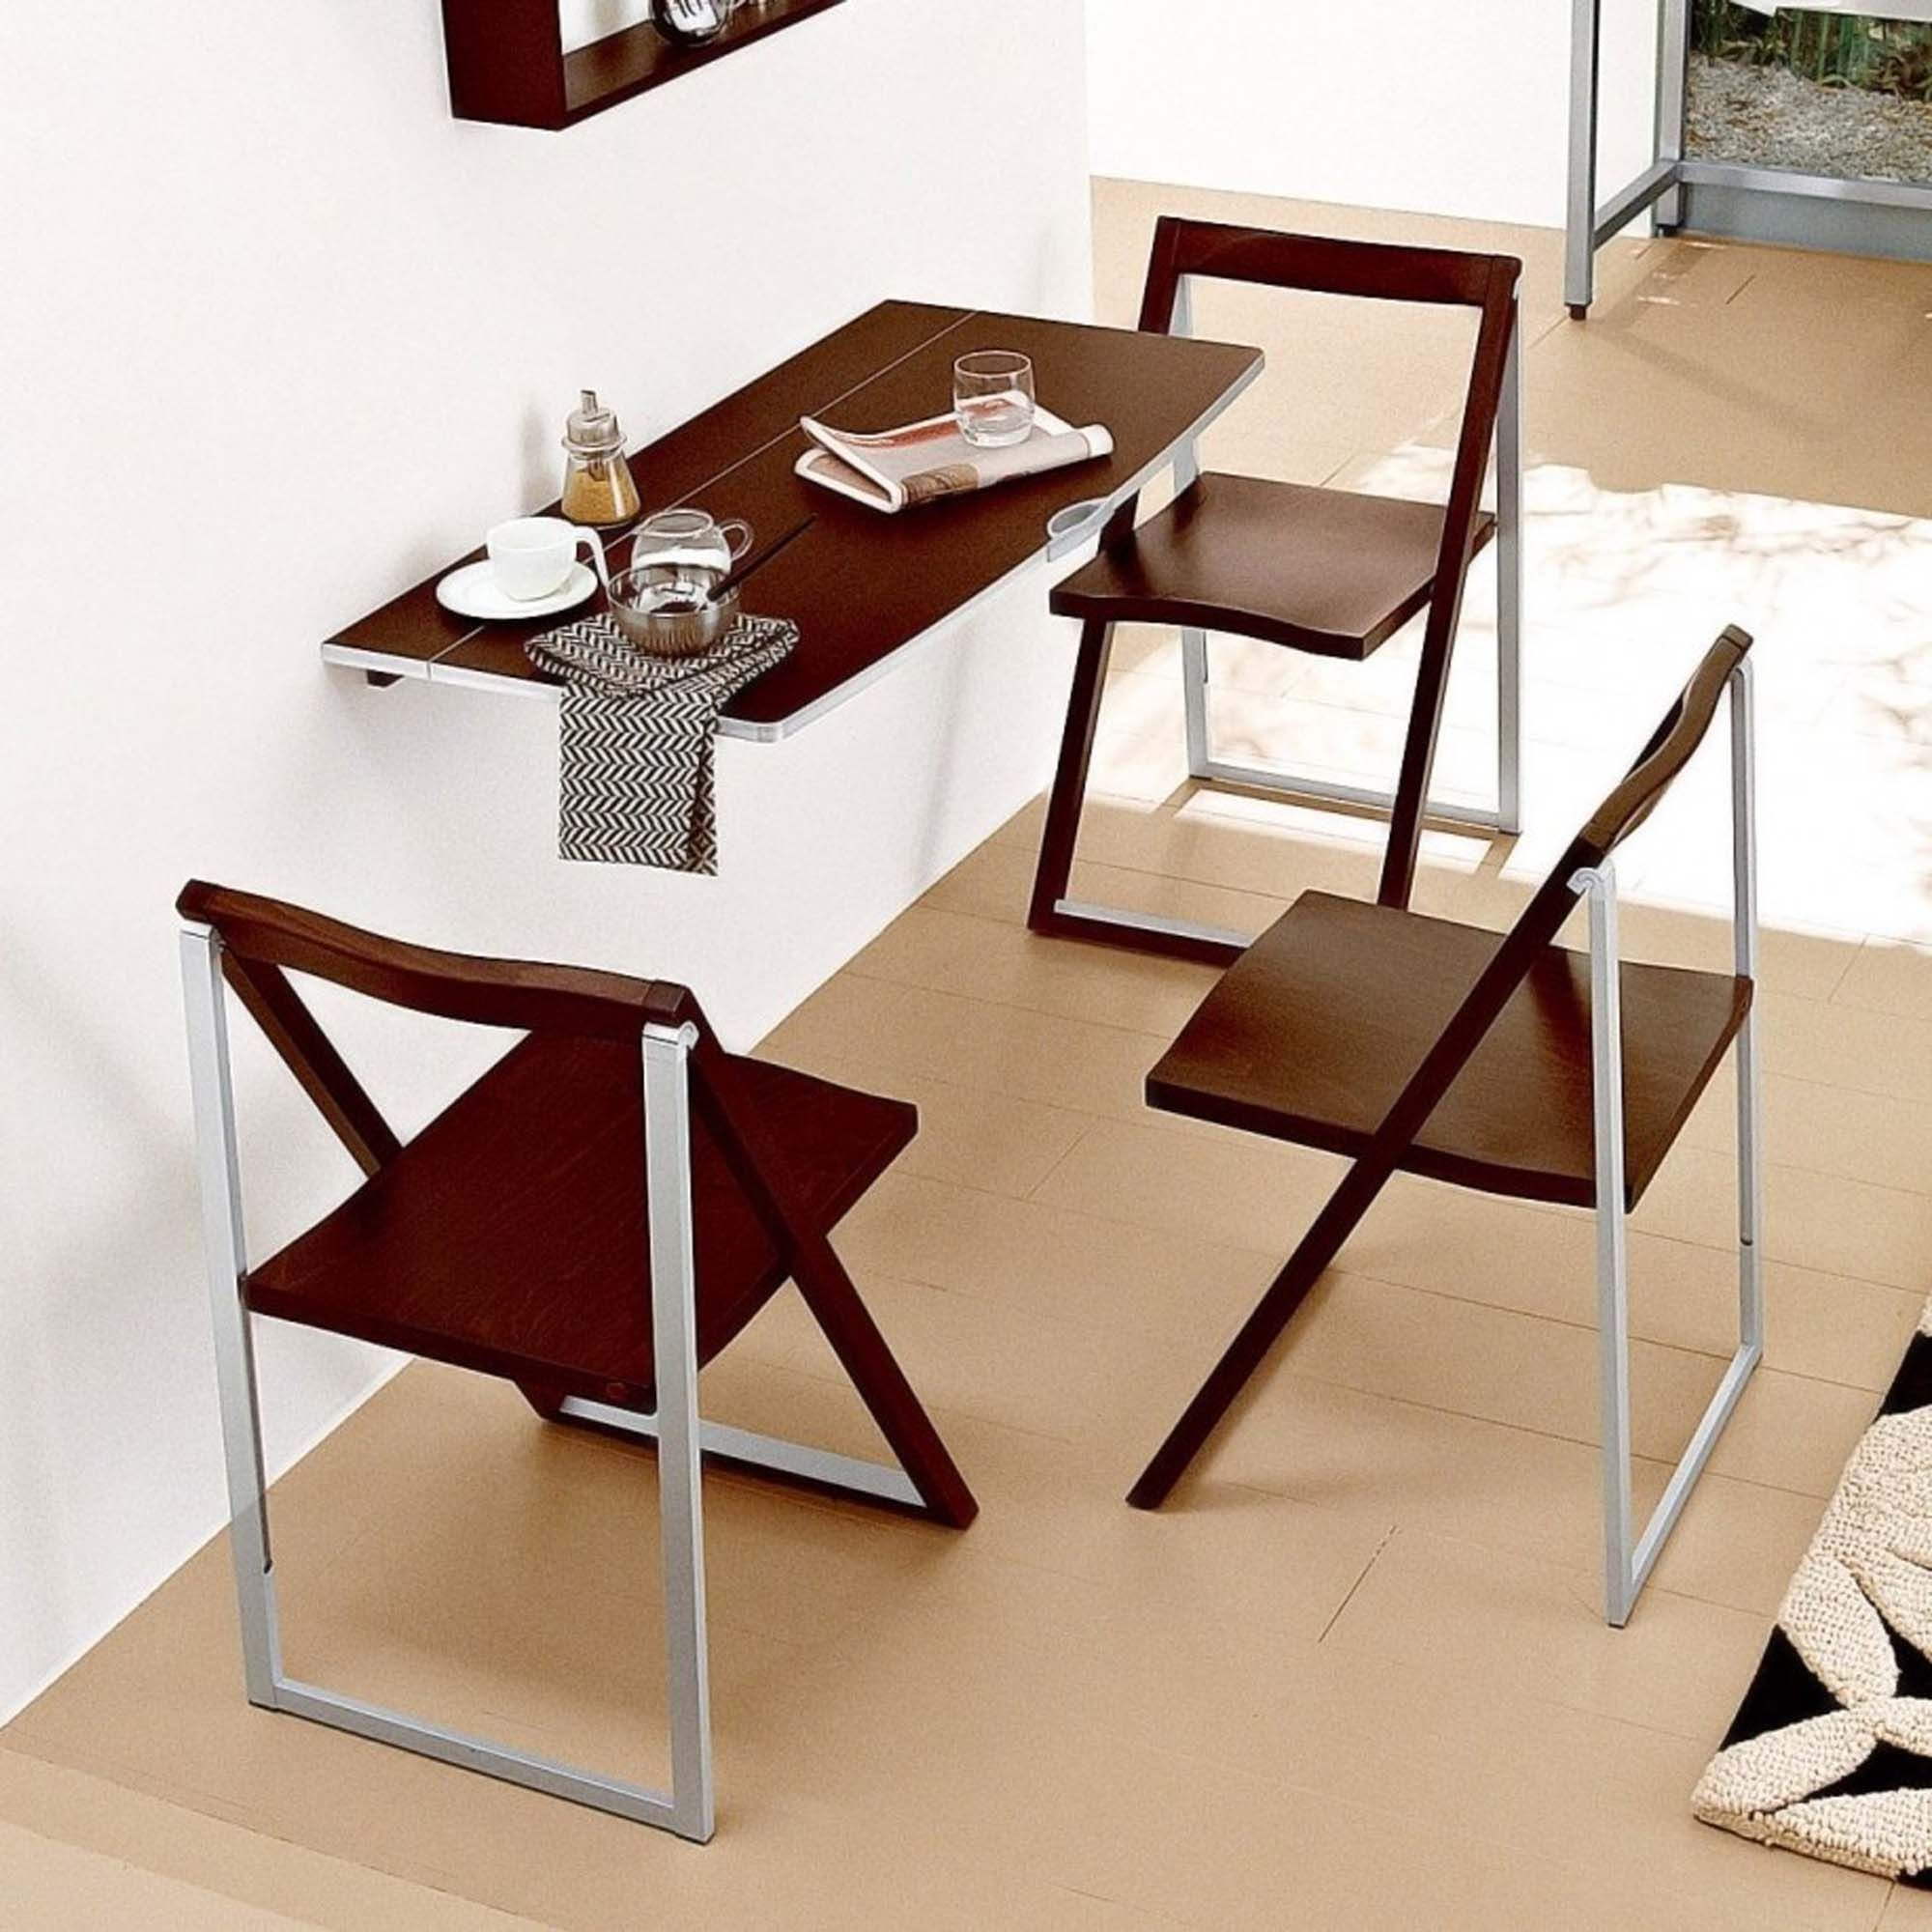 Furniture Small Modern Dining Room Spaces With Wood Wall Mounted Drop Leaf Dining Table Painted With Dar Kleiner Esstisch Modernes Esszimmer Wohnung Esszimmer